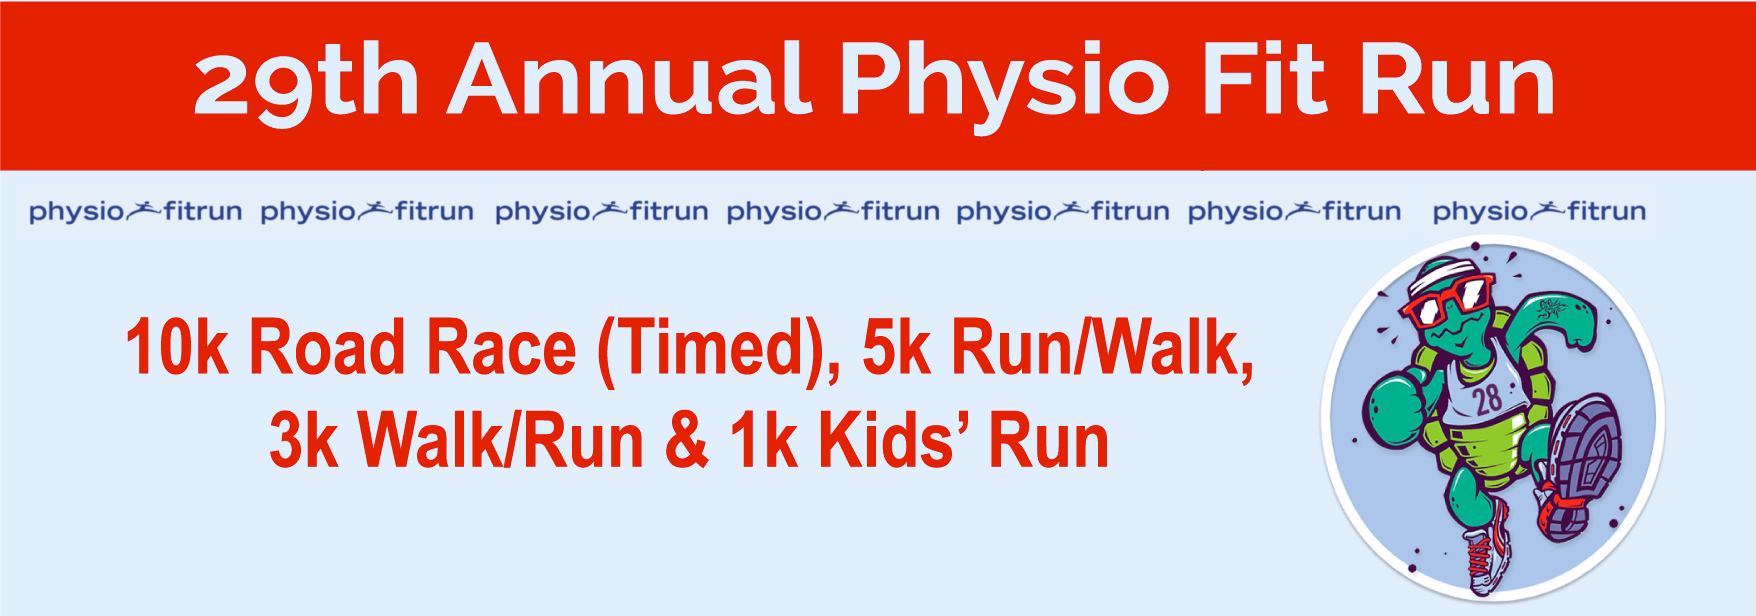 Physio Fit Run